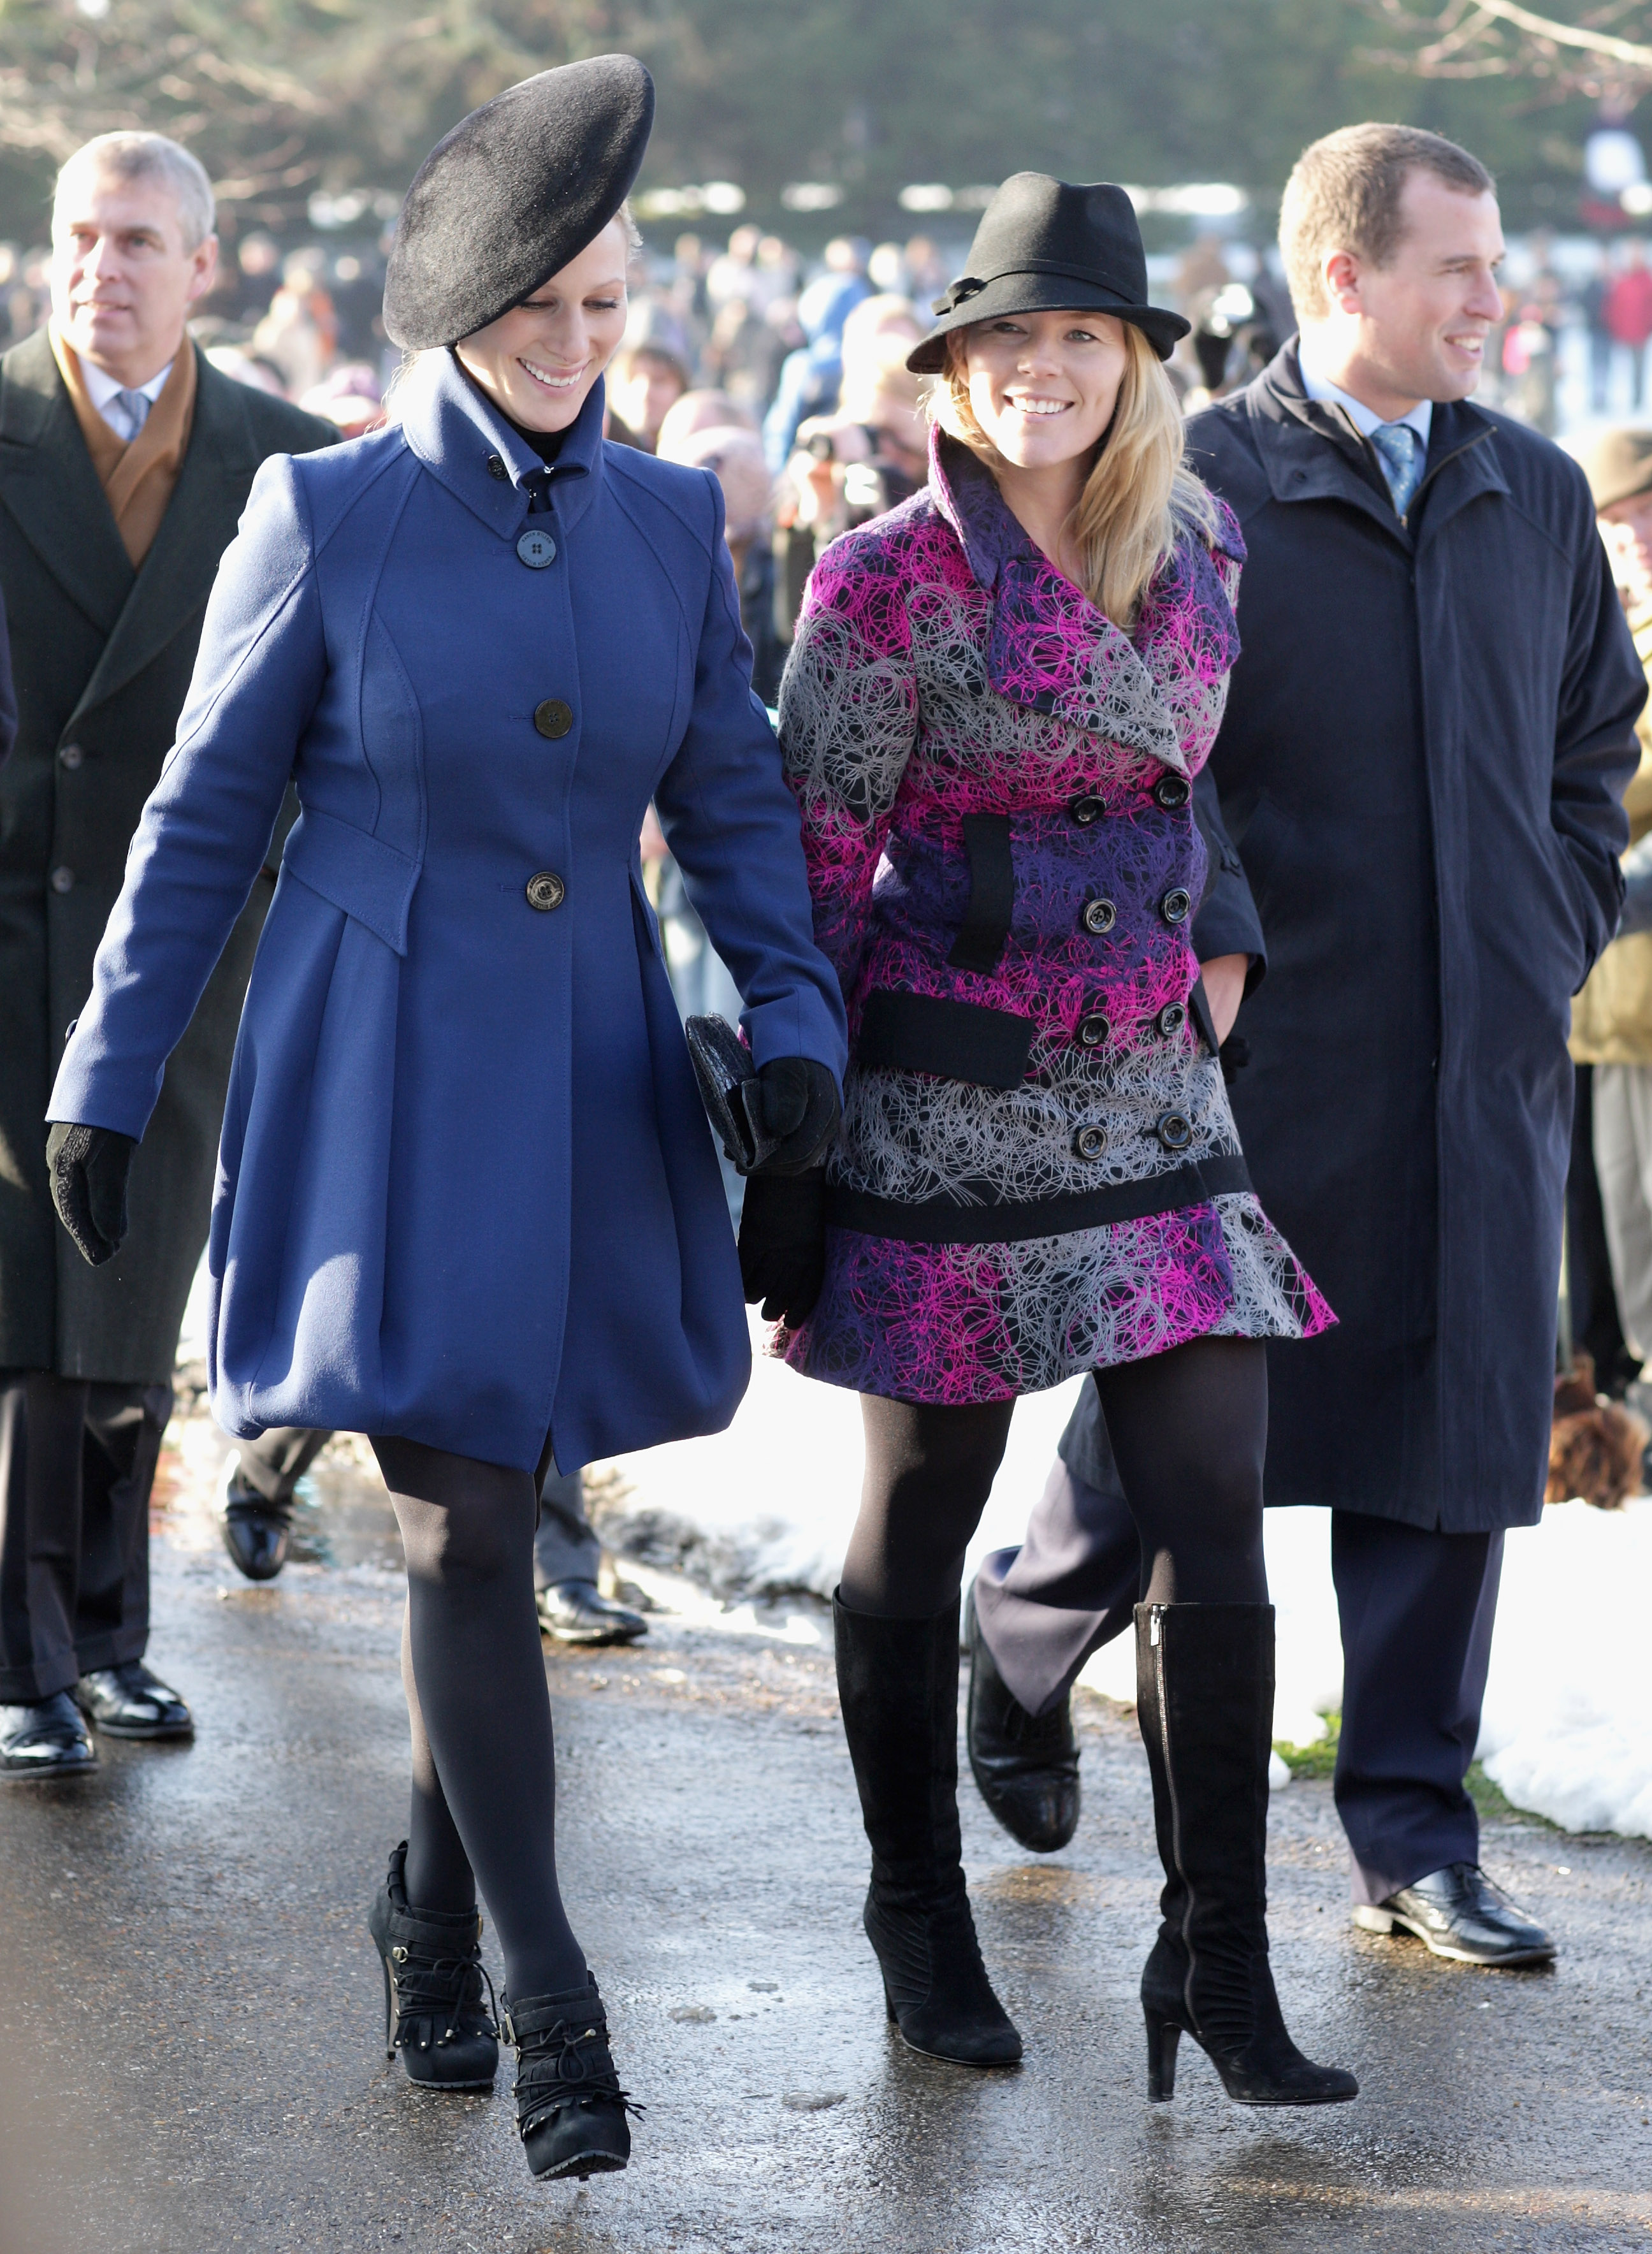 Zara And Her New Sister In Law Autumn Phillips Are All